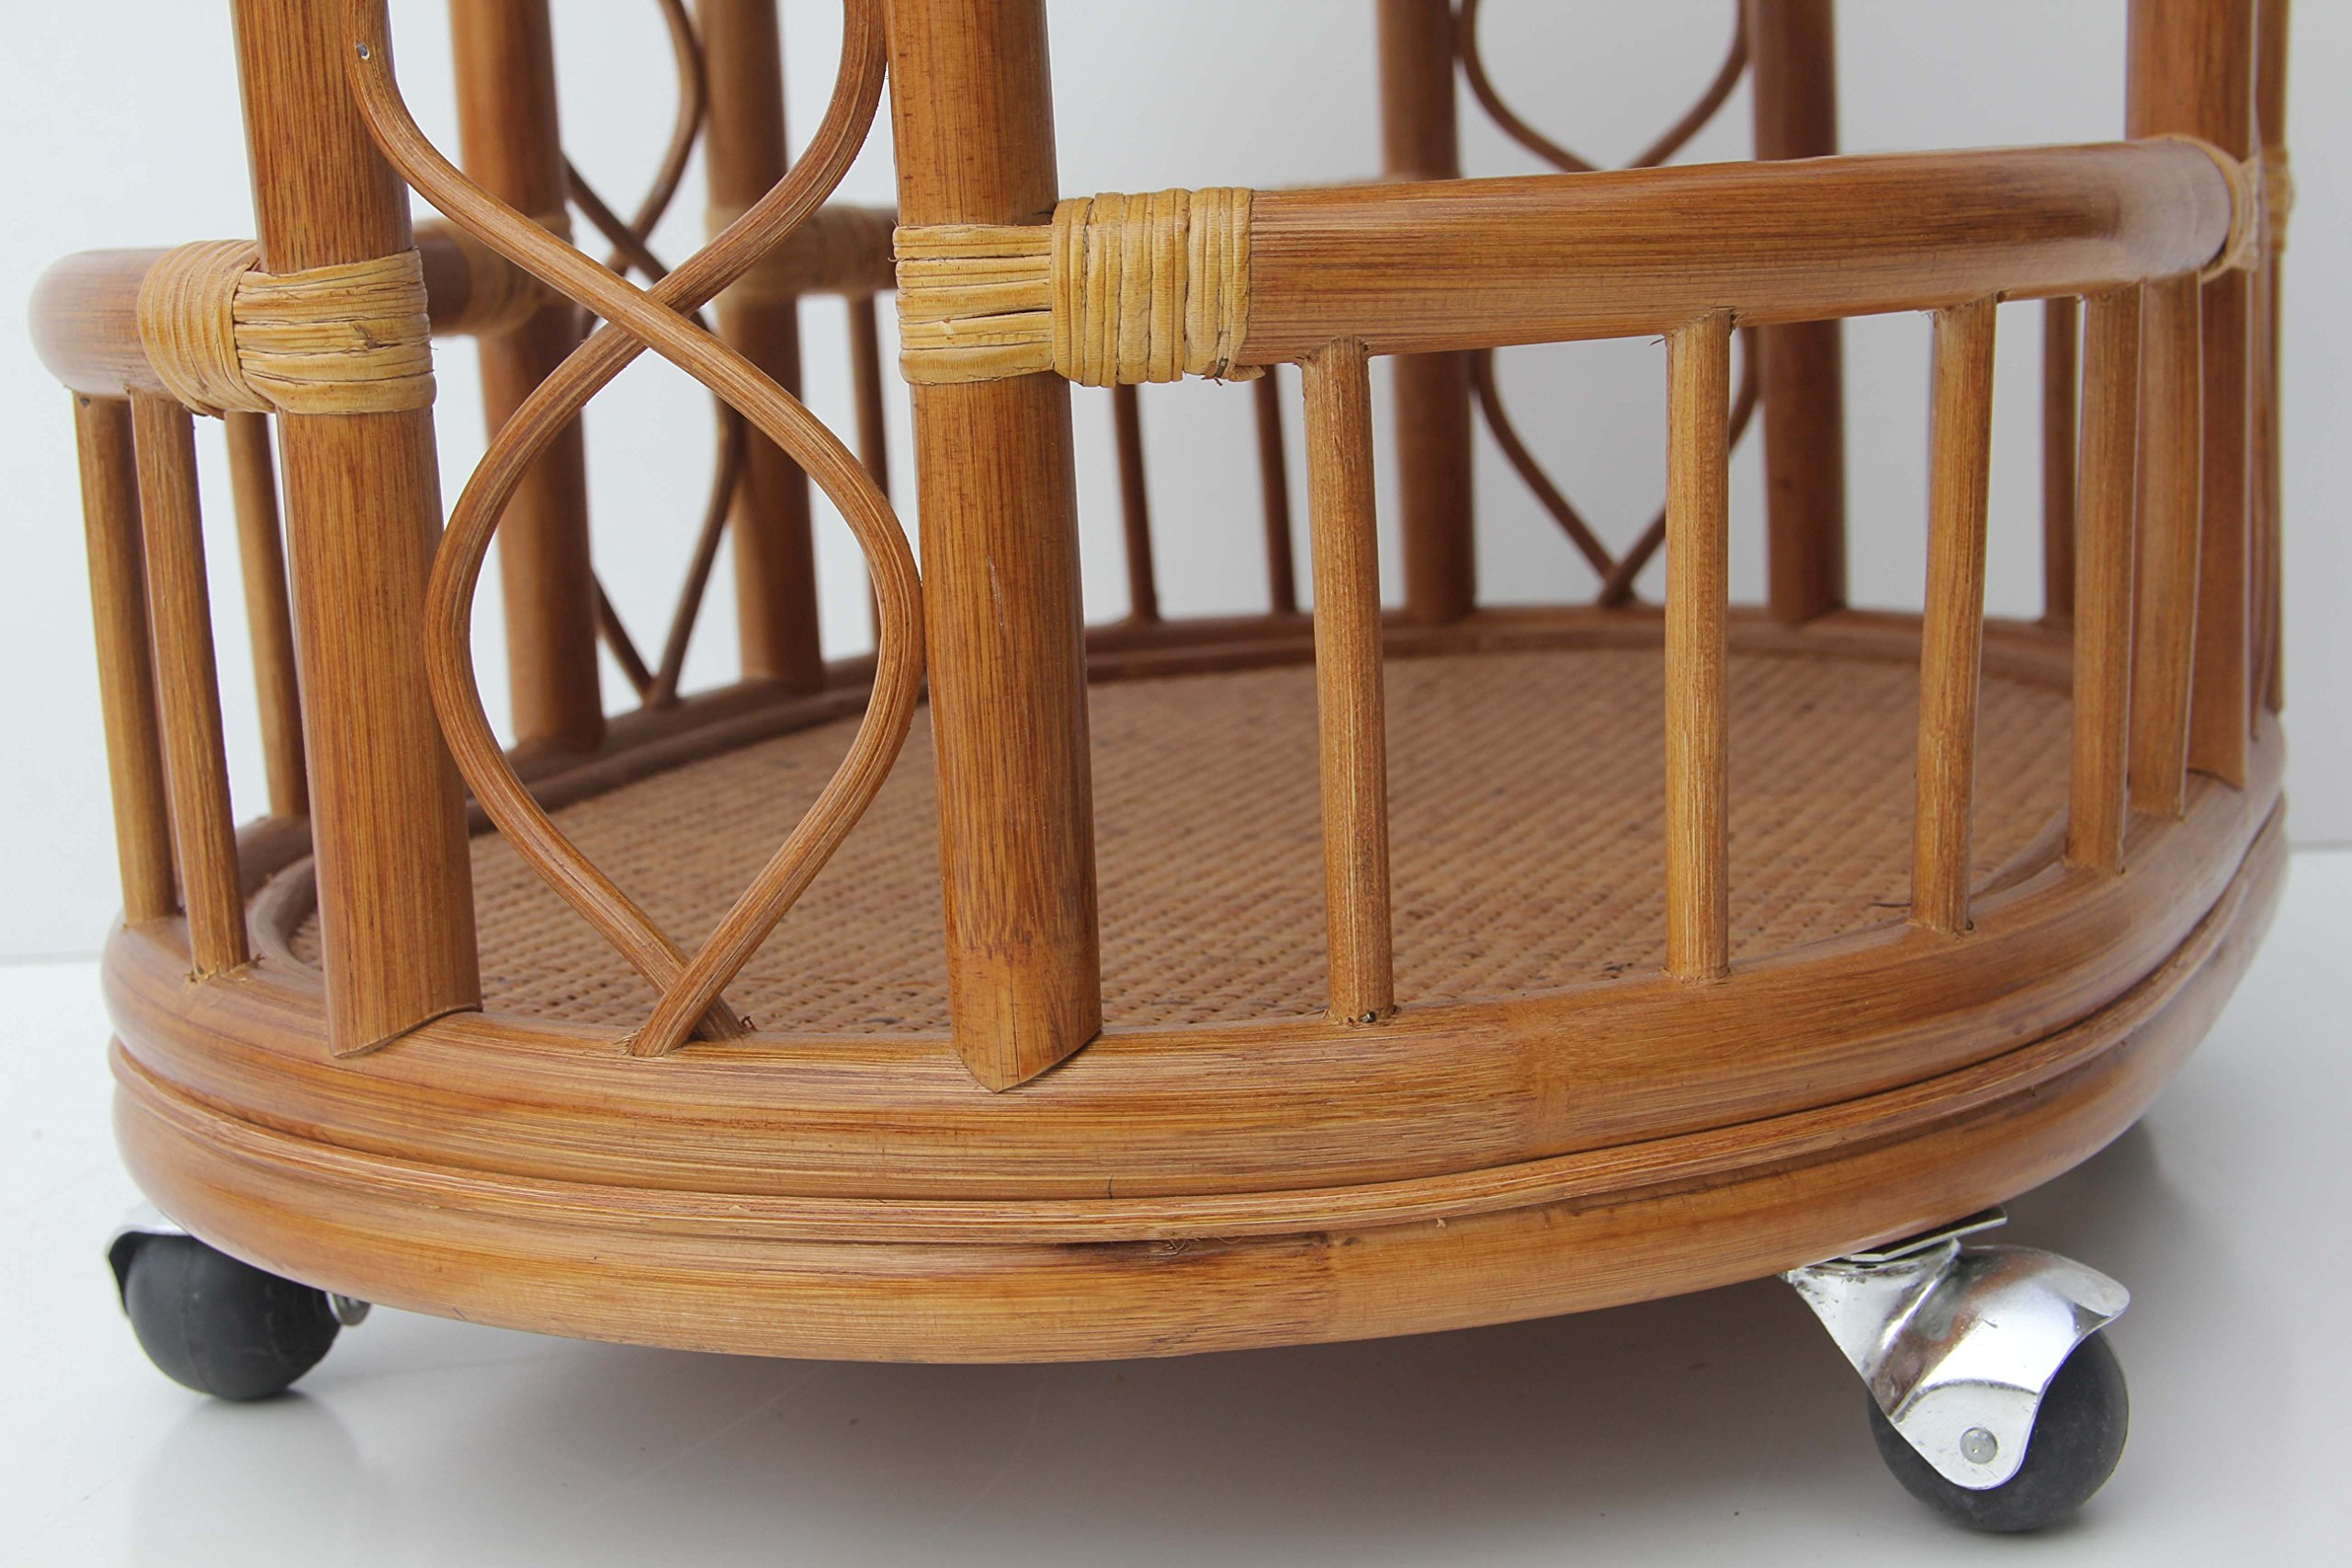 Moving Serving Cart Bar Table Natural Rattan Wicker Exclusive Handmade ECO, Cognac by SunBear Furniture (Image #2)